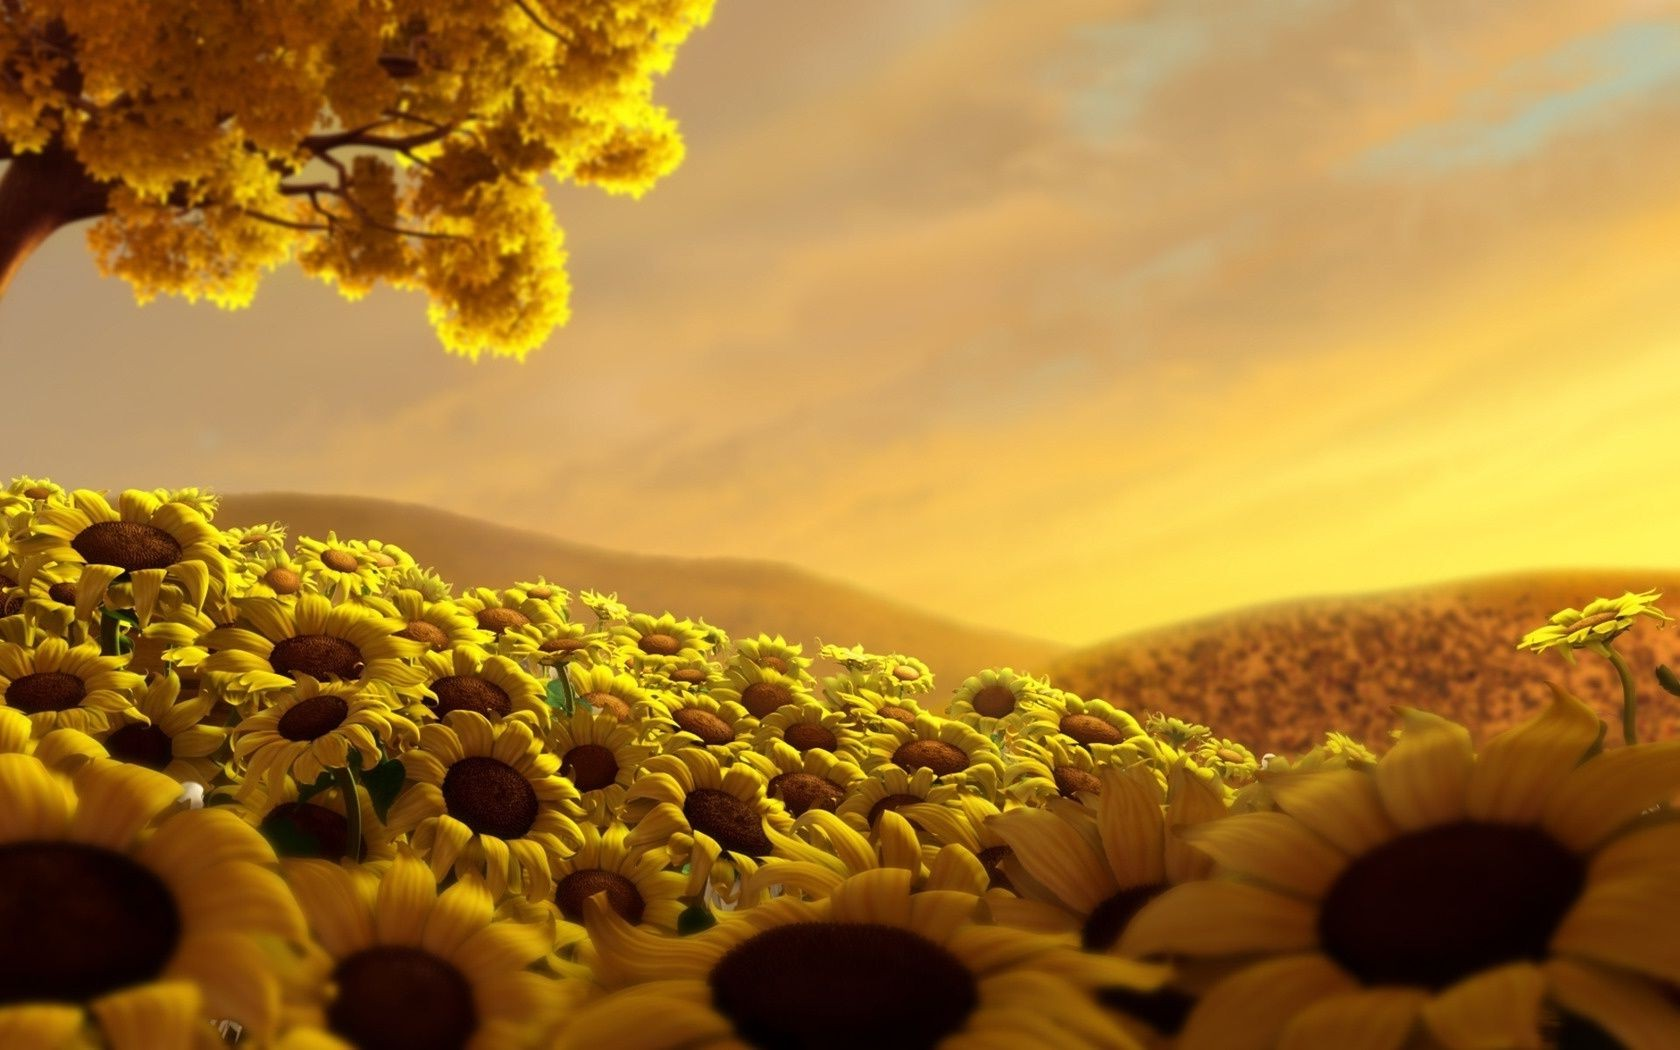 Field Of Sunflowers In The Hills Desktop Wallpapers For Free